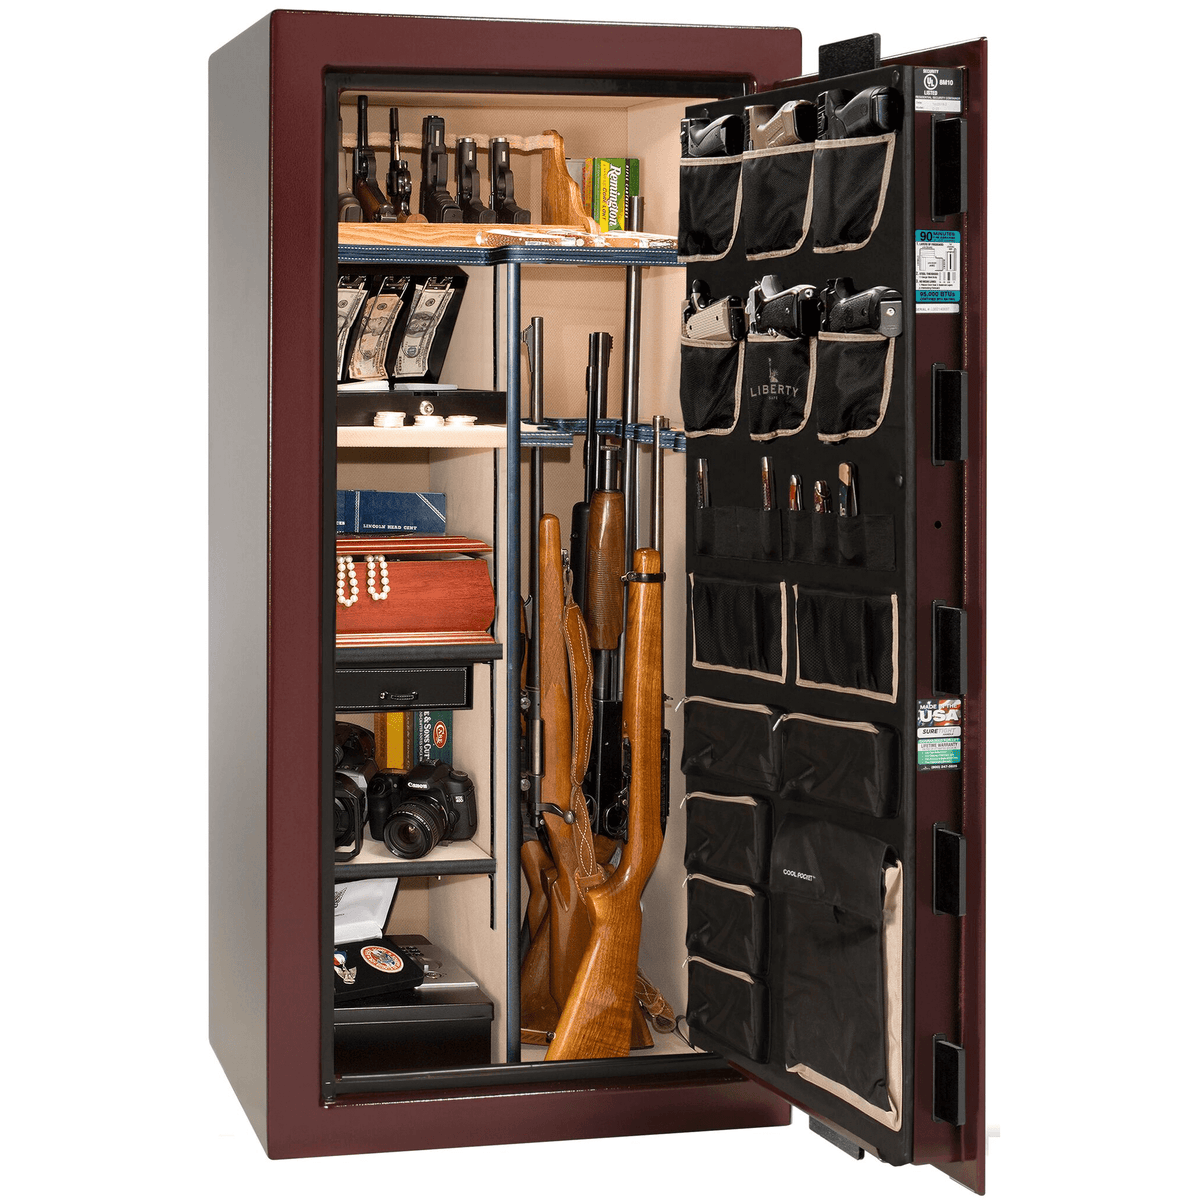 "Classic Select | 25 | Level 6 Security | 90 Minute Fire Protection | Burgundy | Brass Electronic Lock | 60.5""(H) x 30""(W) x 28.5""(D)"